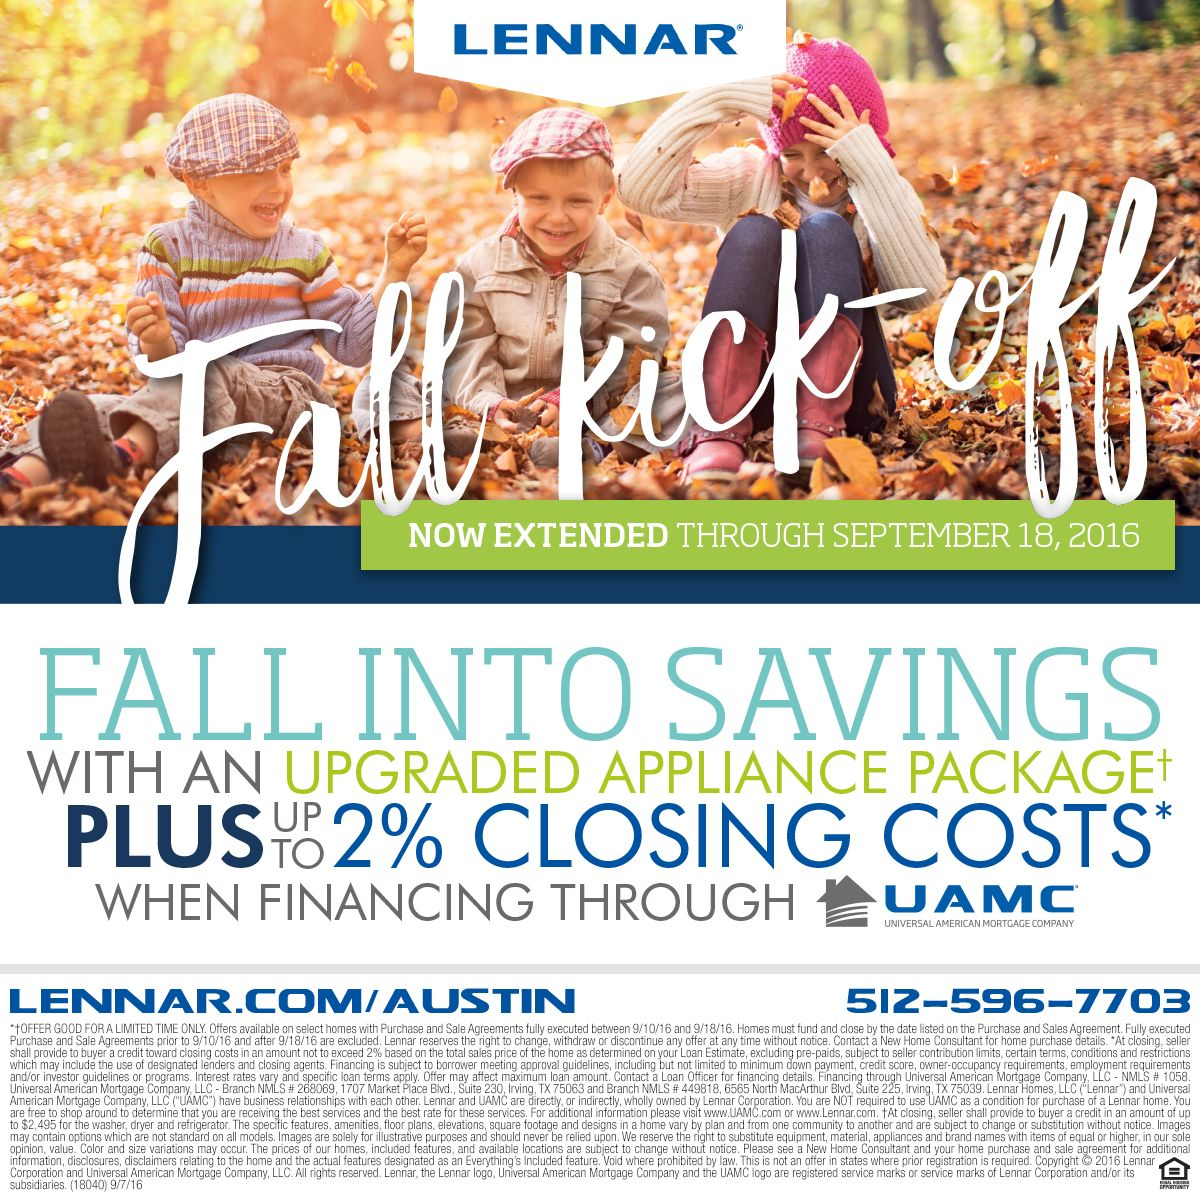 Fall Sales Event This Weekend! Receive an Appliance Package and up to 2% Closing Costs! Find your Dream Home today!